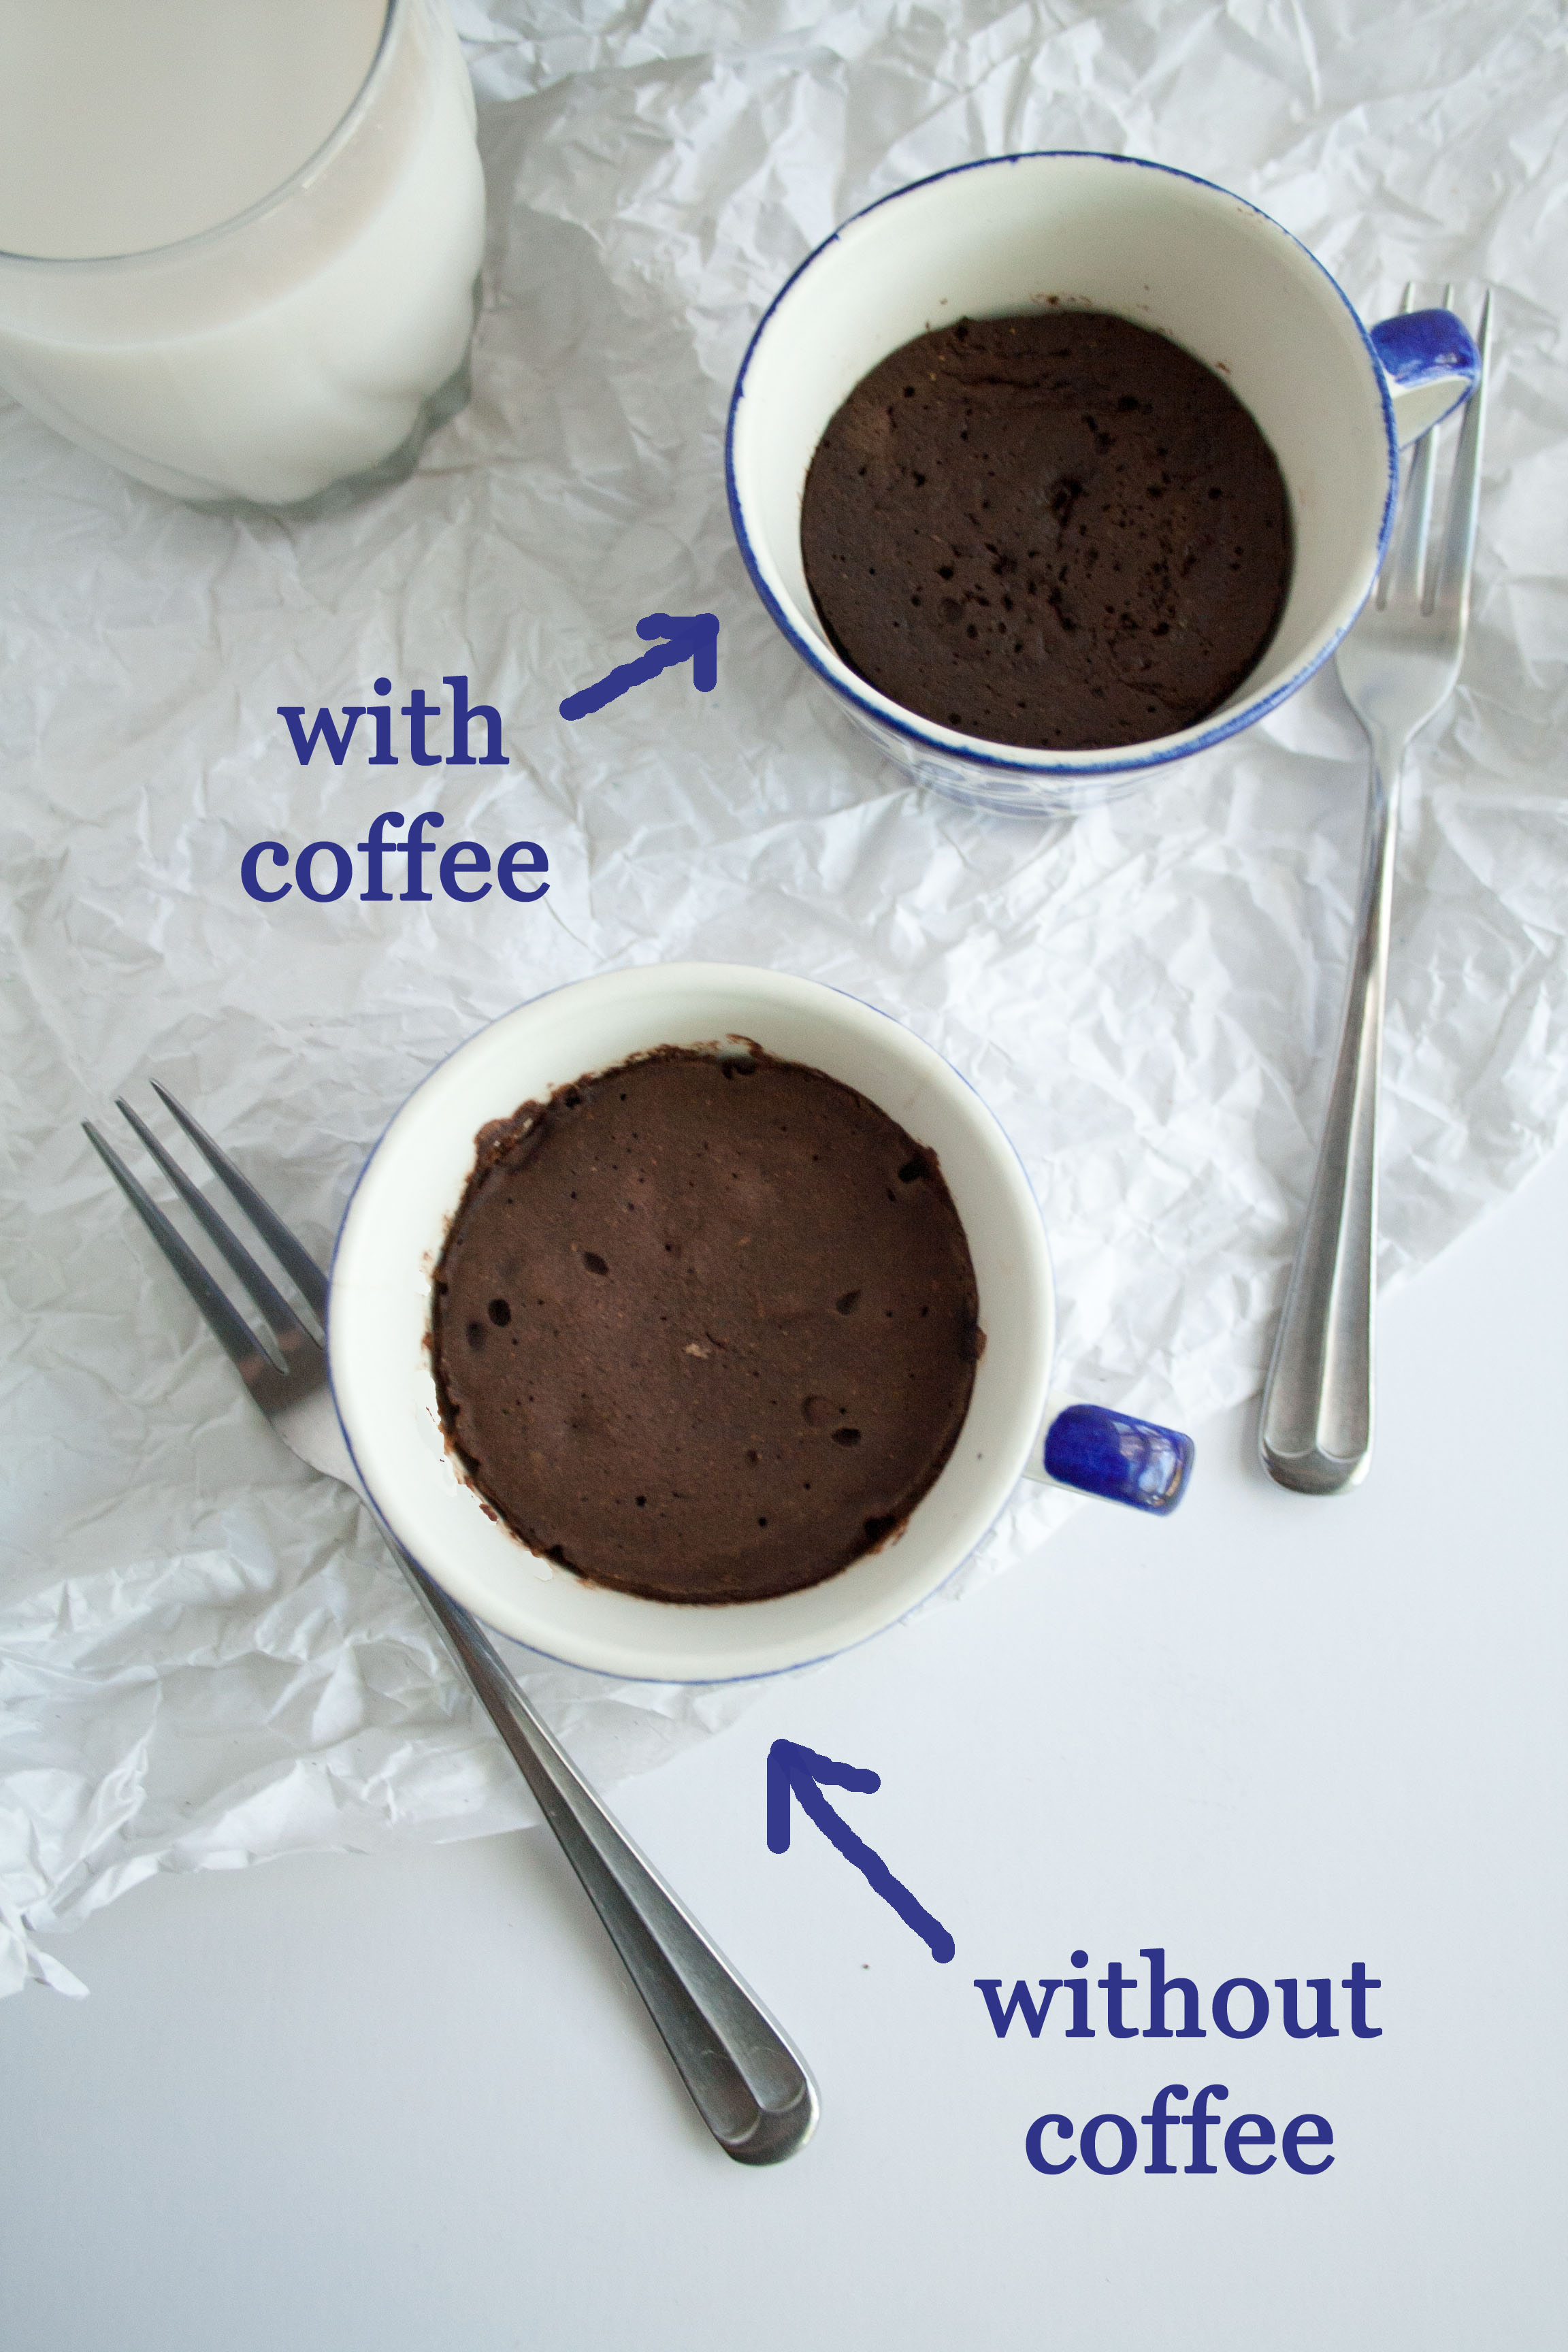 Two Chocolate Coffee Mug Cakes birds eye view: one has coffee, one doesn't.